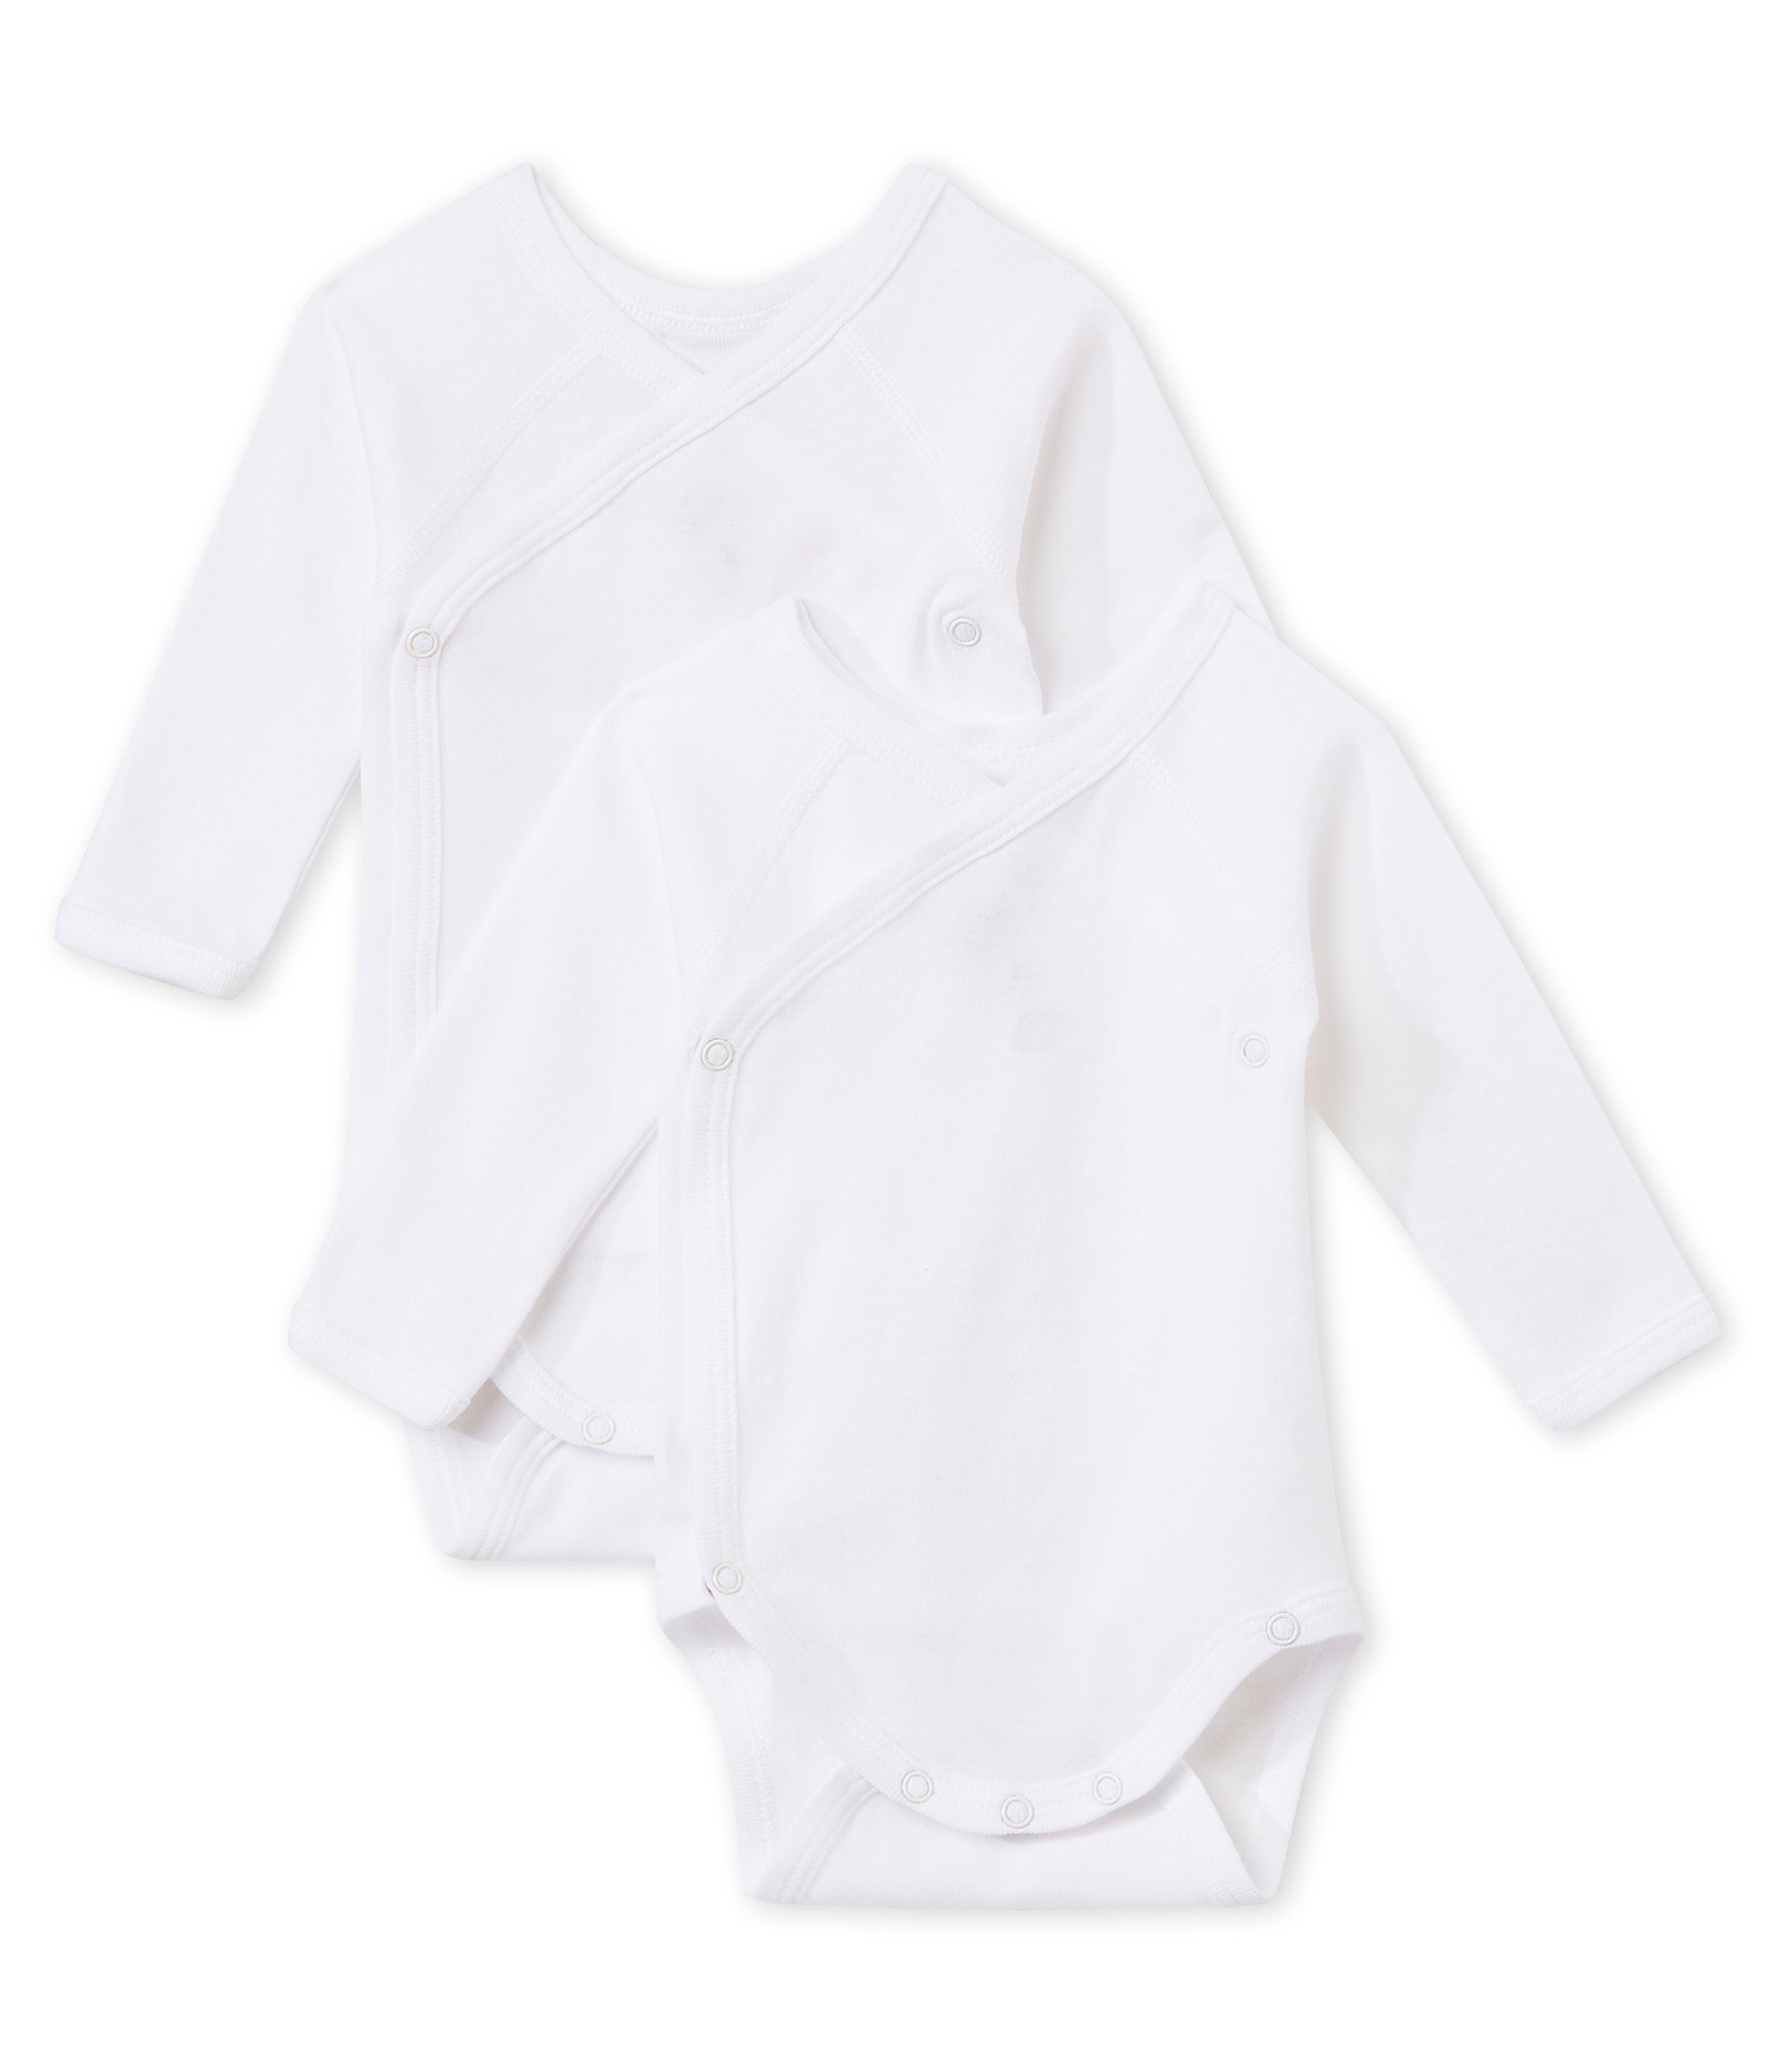 Newborn Babies' Long-Sleeved Bodysuit - 2-Piece Set